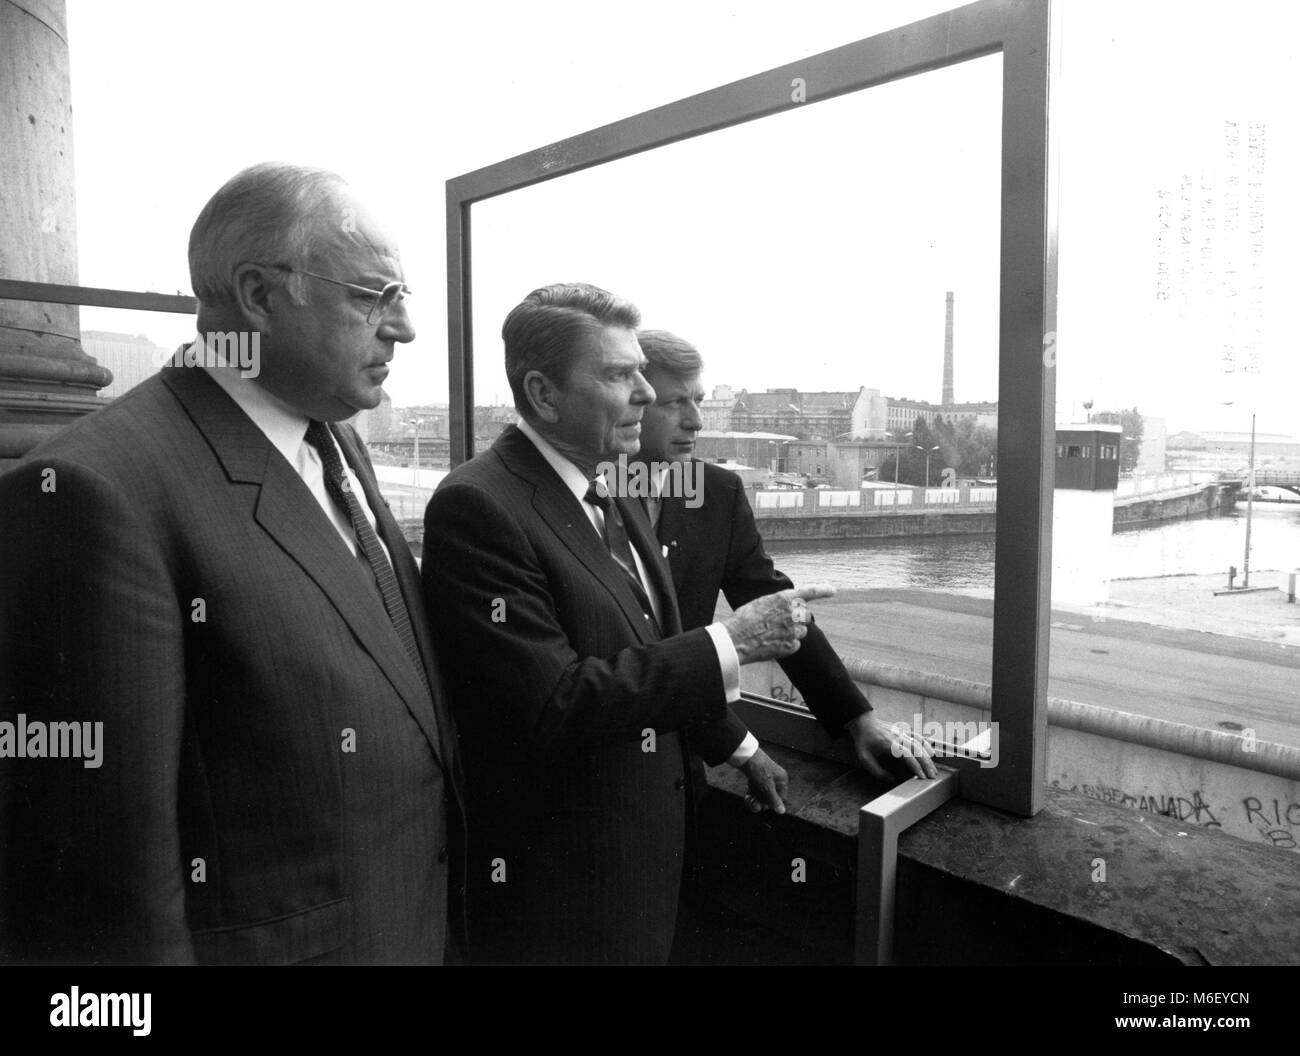 U S President Ronald Reagan (center) overlooks the Berlin Wall from the balcony of the Reichstag, flanked by Federal - Stock Image